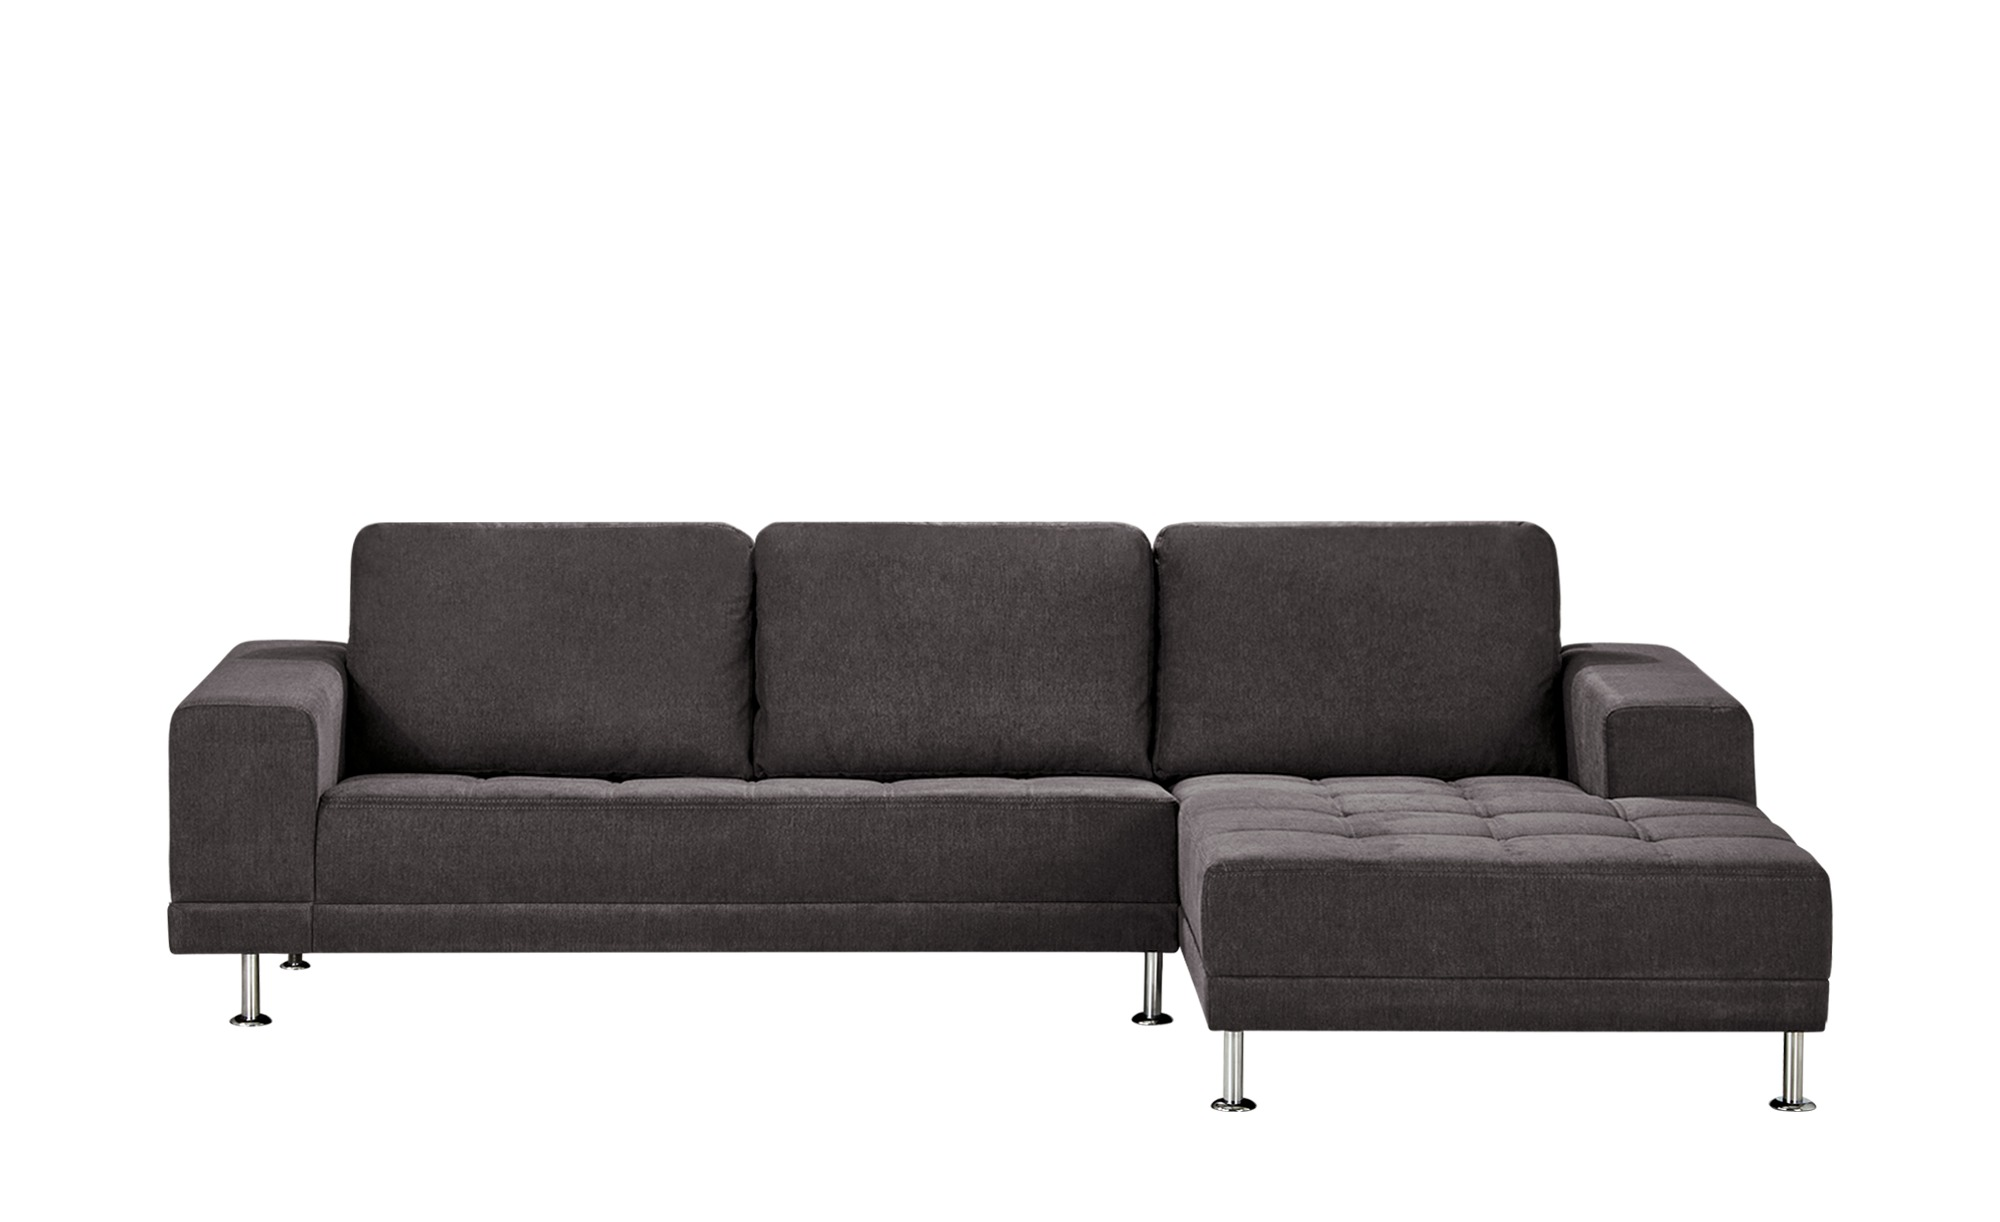 Schlafsofa Gunstig Kaufen Roller Design Sofa Online Kaufen Schone Sofas Gunstig Chesterfield Sofa Company Reviews Ecksofa M In 2020 Gunstige Sofas Ecksofa Sofa